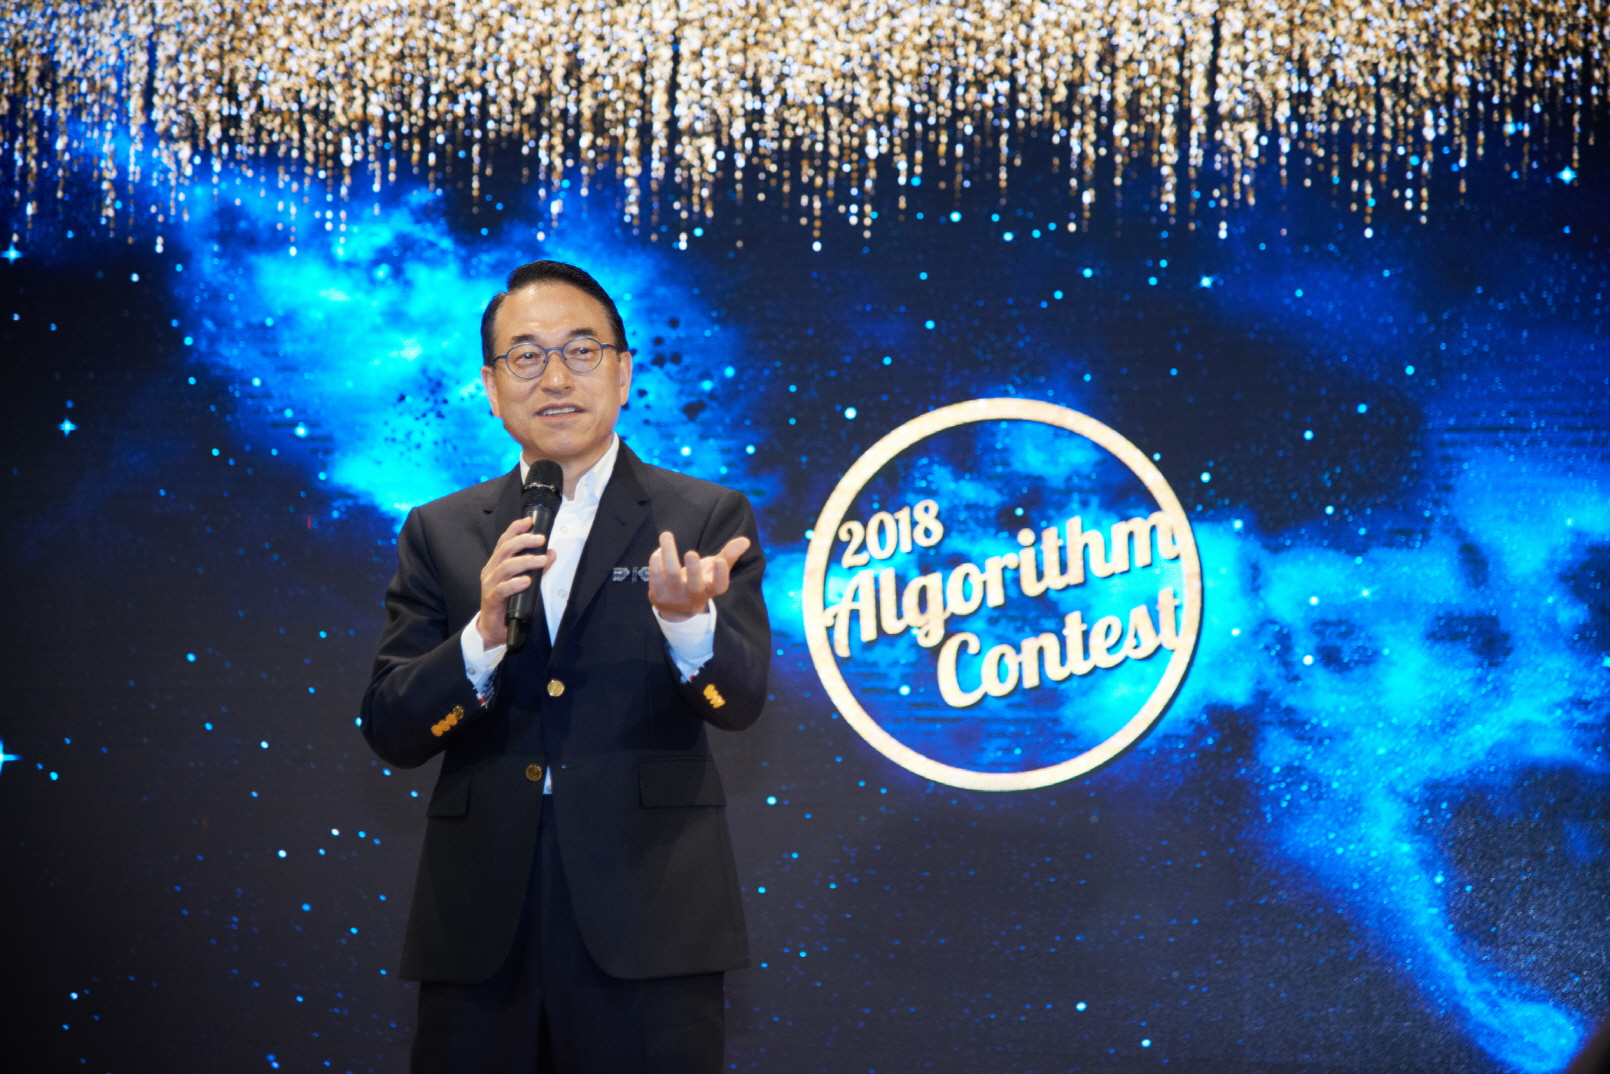 Samsung SDS President & CEO,  Dr. WP Hong, gives words of encouragement at the 'Algorithm Contest' held at the Samsung SDS Jamsil Campus on September 13.